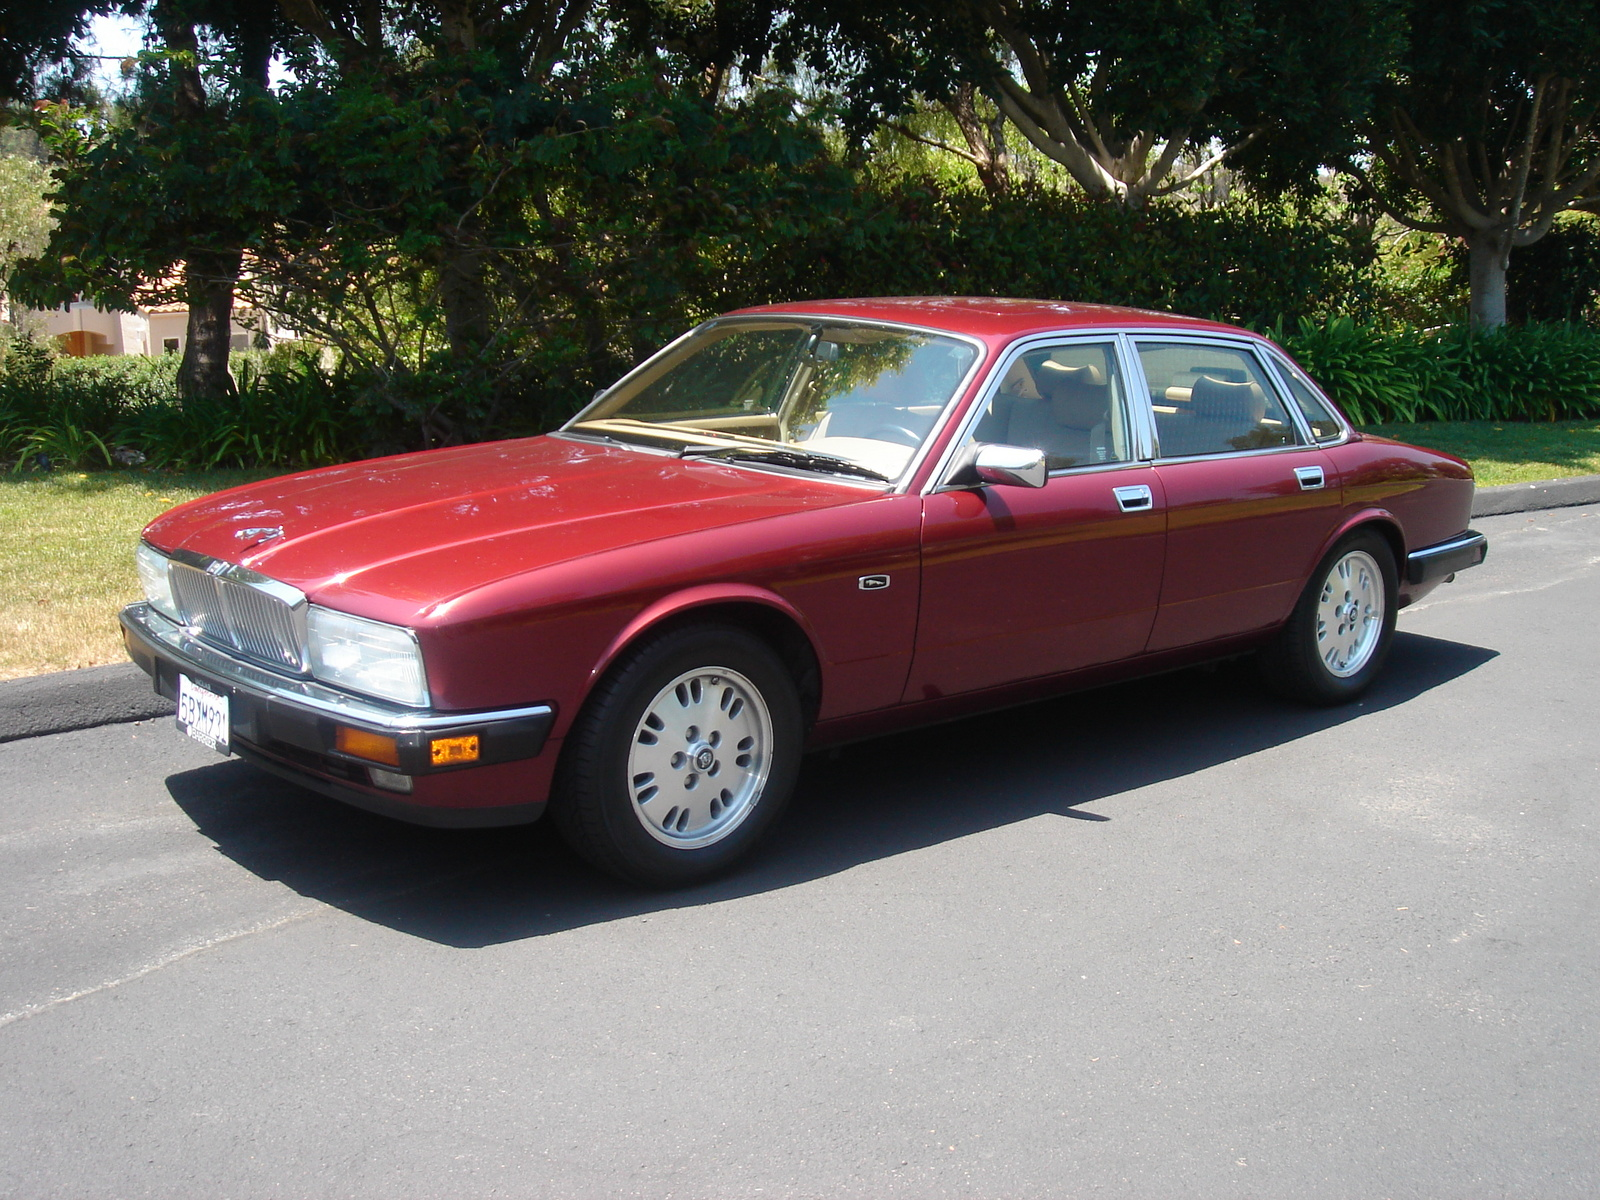 1994 Jaguar XJ-Series 4 Dr XJ6 Sedan picture